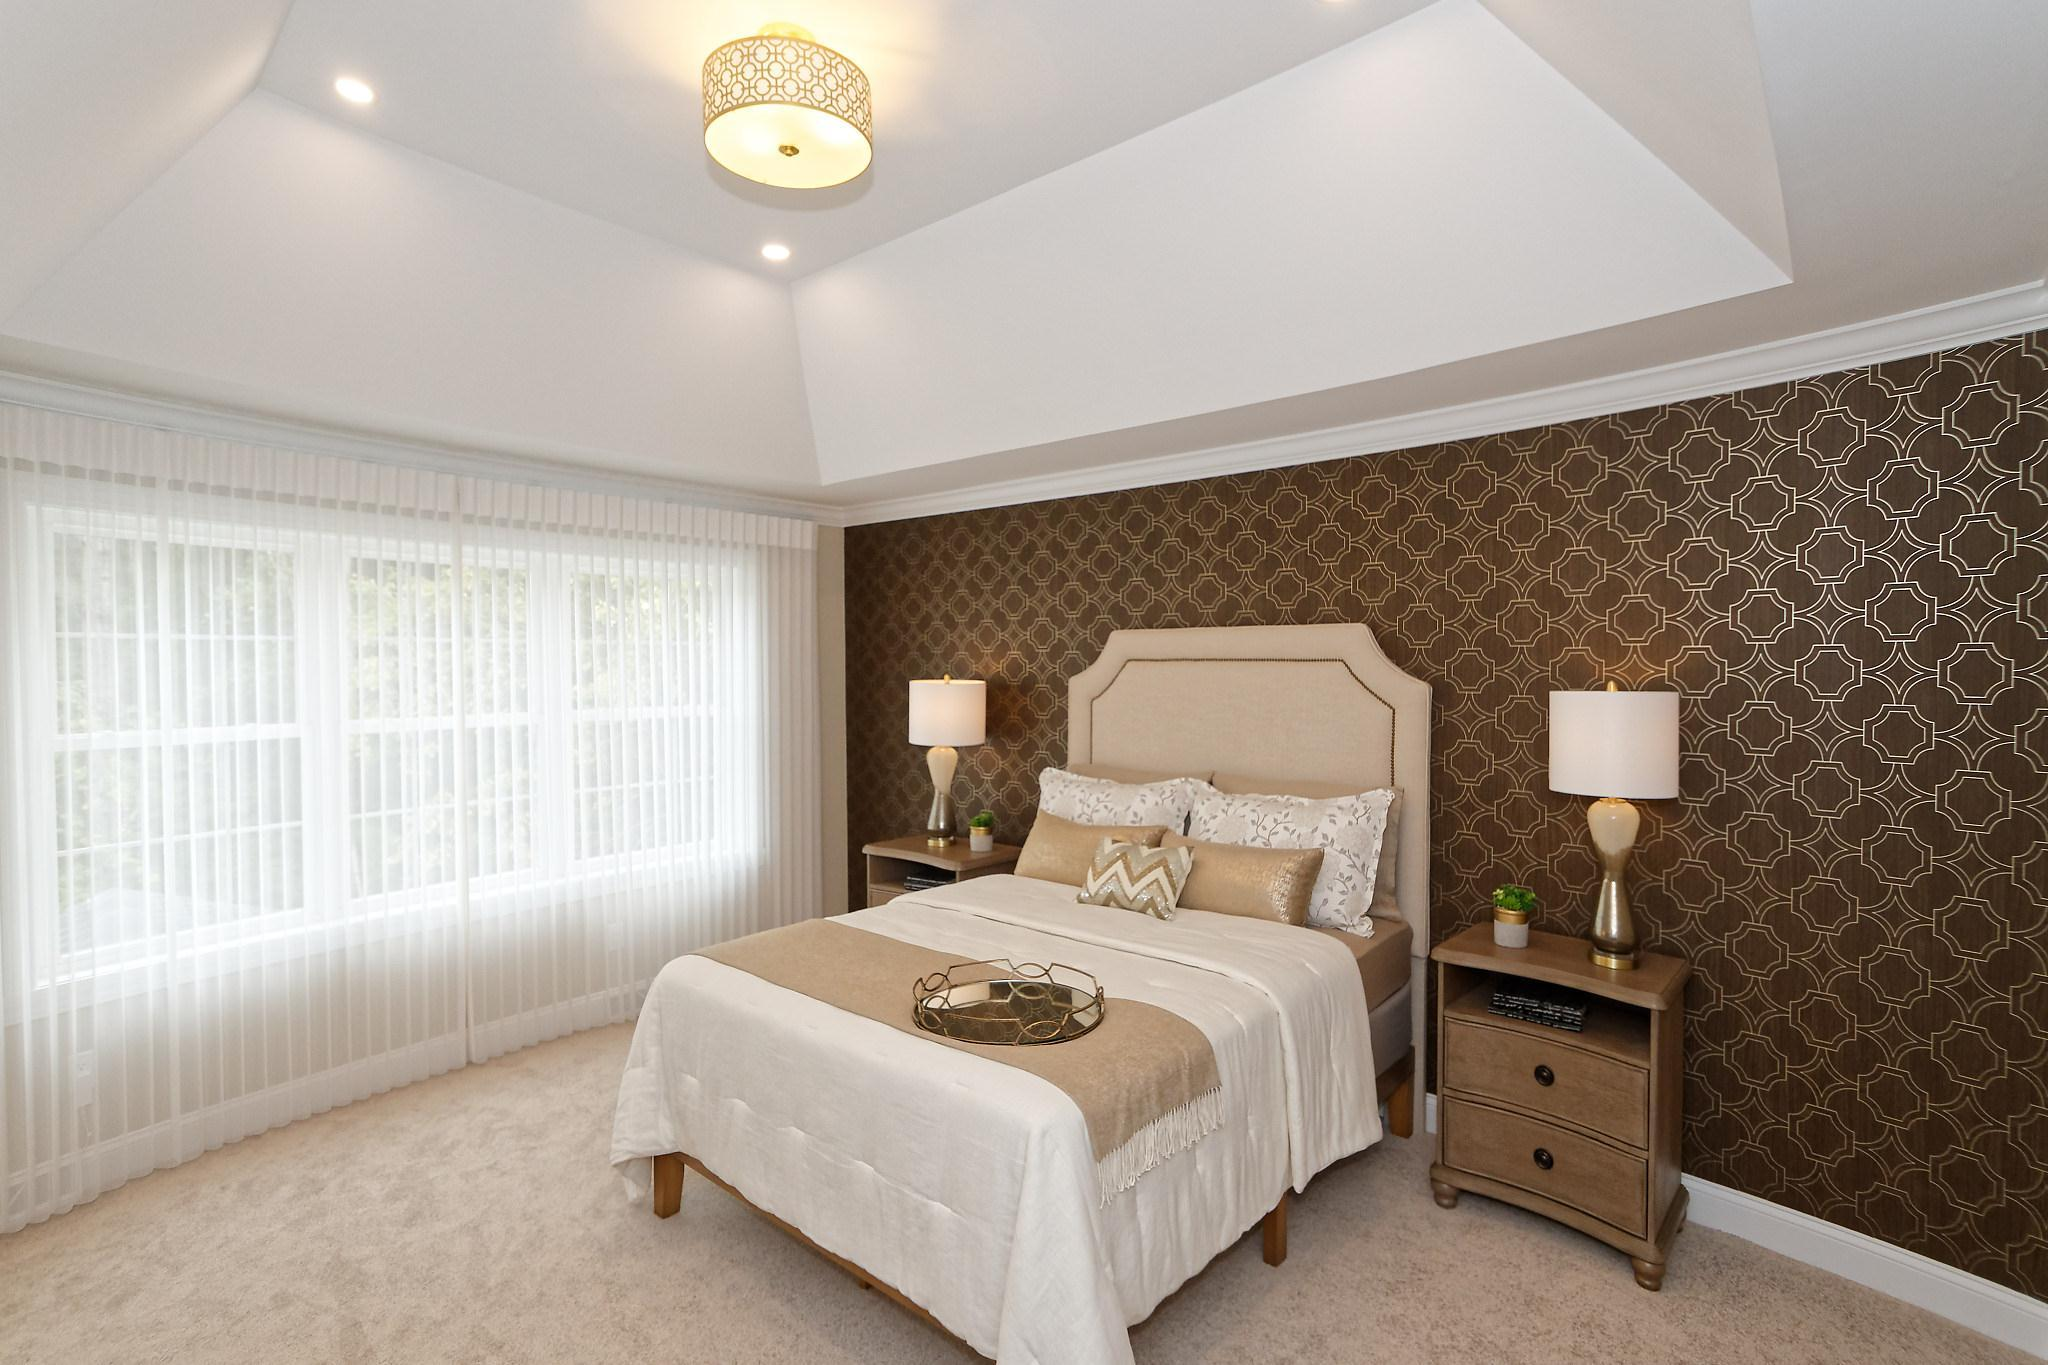 Bedroom featured in the Royal Palm - Phase 4 By Heritage Custom Builders in Albany-Saratoga, NY